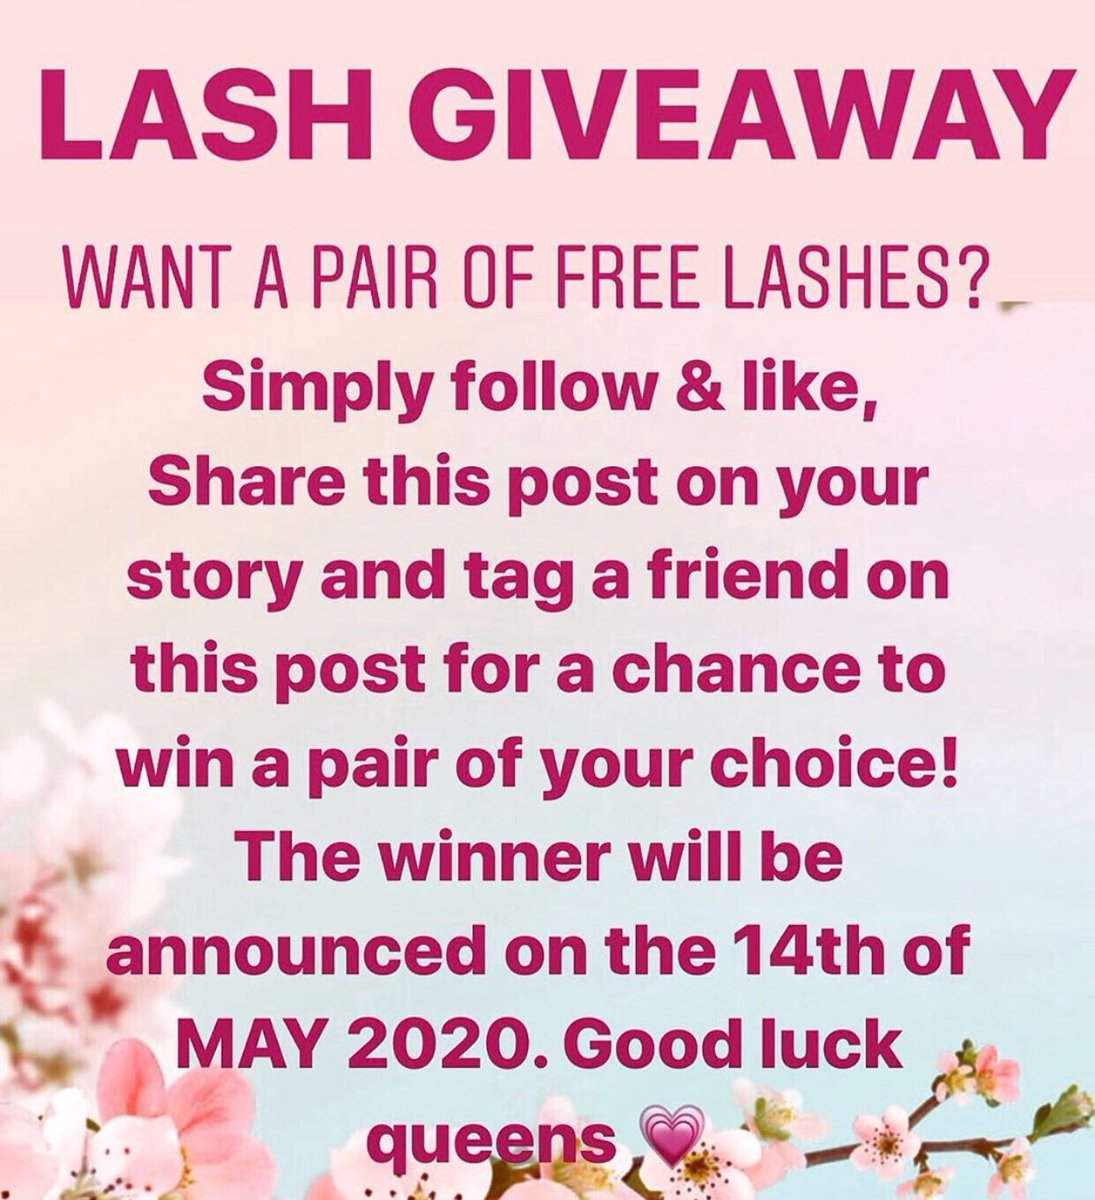 Head over to our Instagram page @cherryoulashes to be entered for this giveaway! Ends tomorrow so be quick #freelashes #mink #fauxmink #blackownedbusiness #freestuff #instagram #striplashes #25mmlashespic.twitter.com/tY3Z7jL3vG